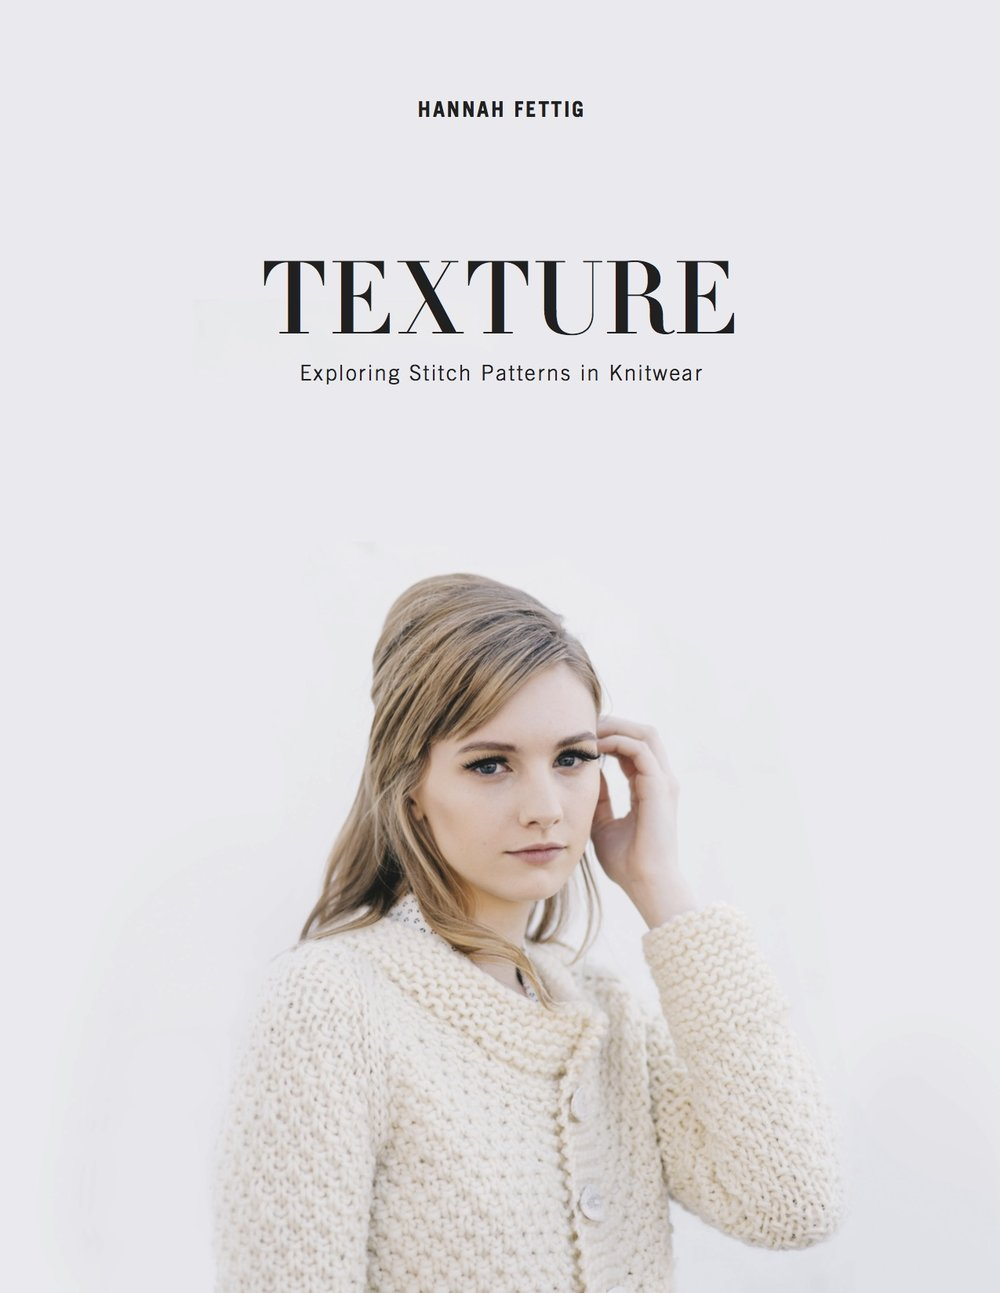 Texture by Hannah Fettig - Book Review on VeryShannon.com